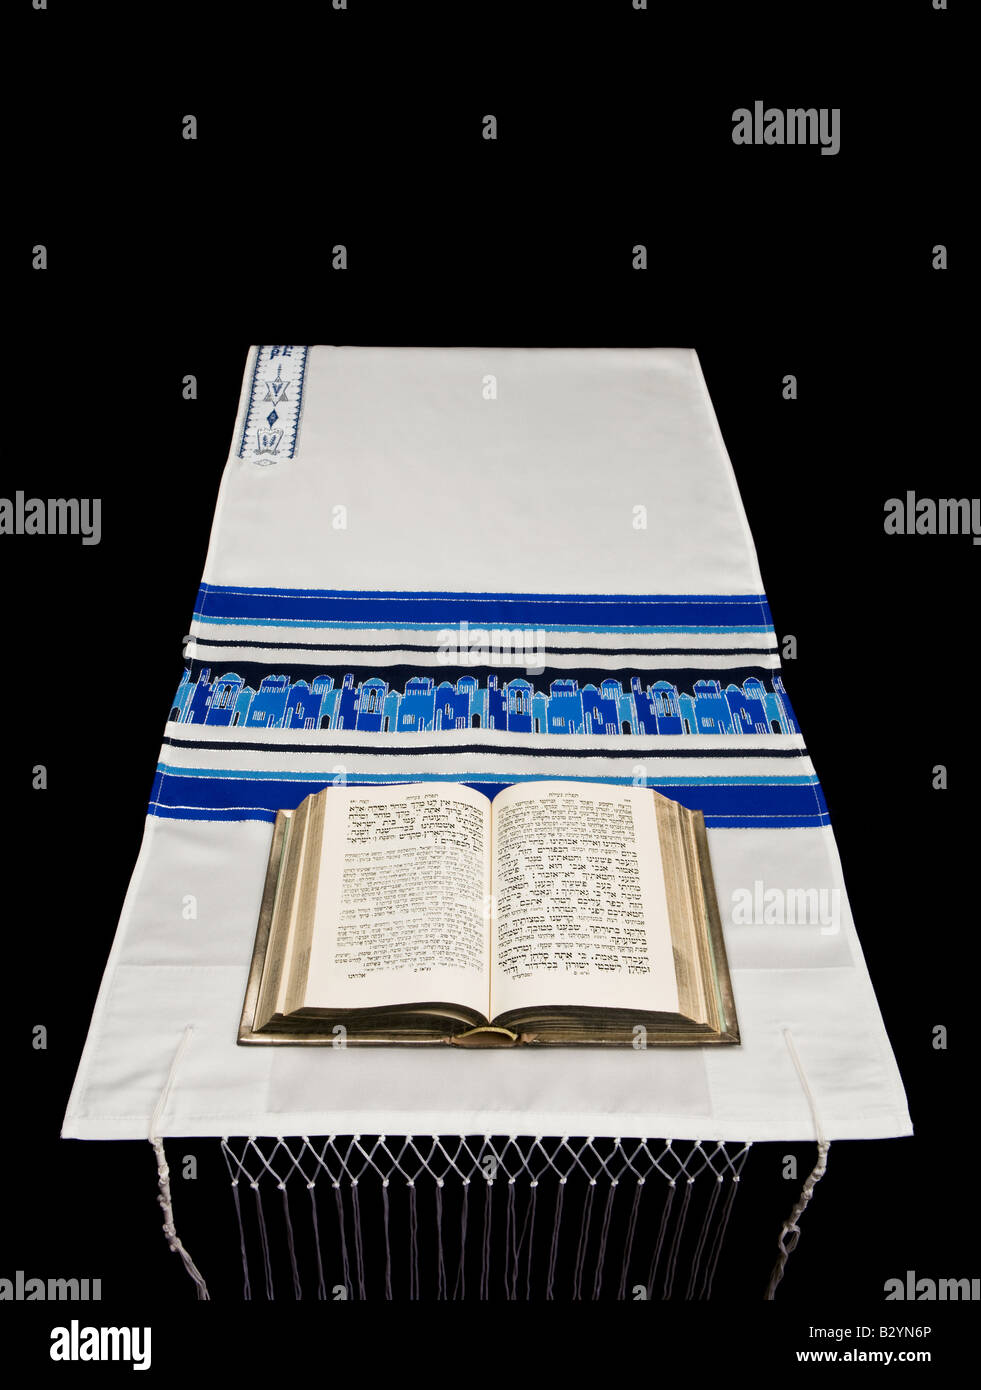 A Jewish prayer book, or Siddur, on a prayer shawl, or tallit, against a black background. - Stock Image